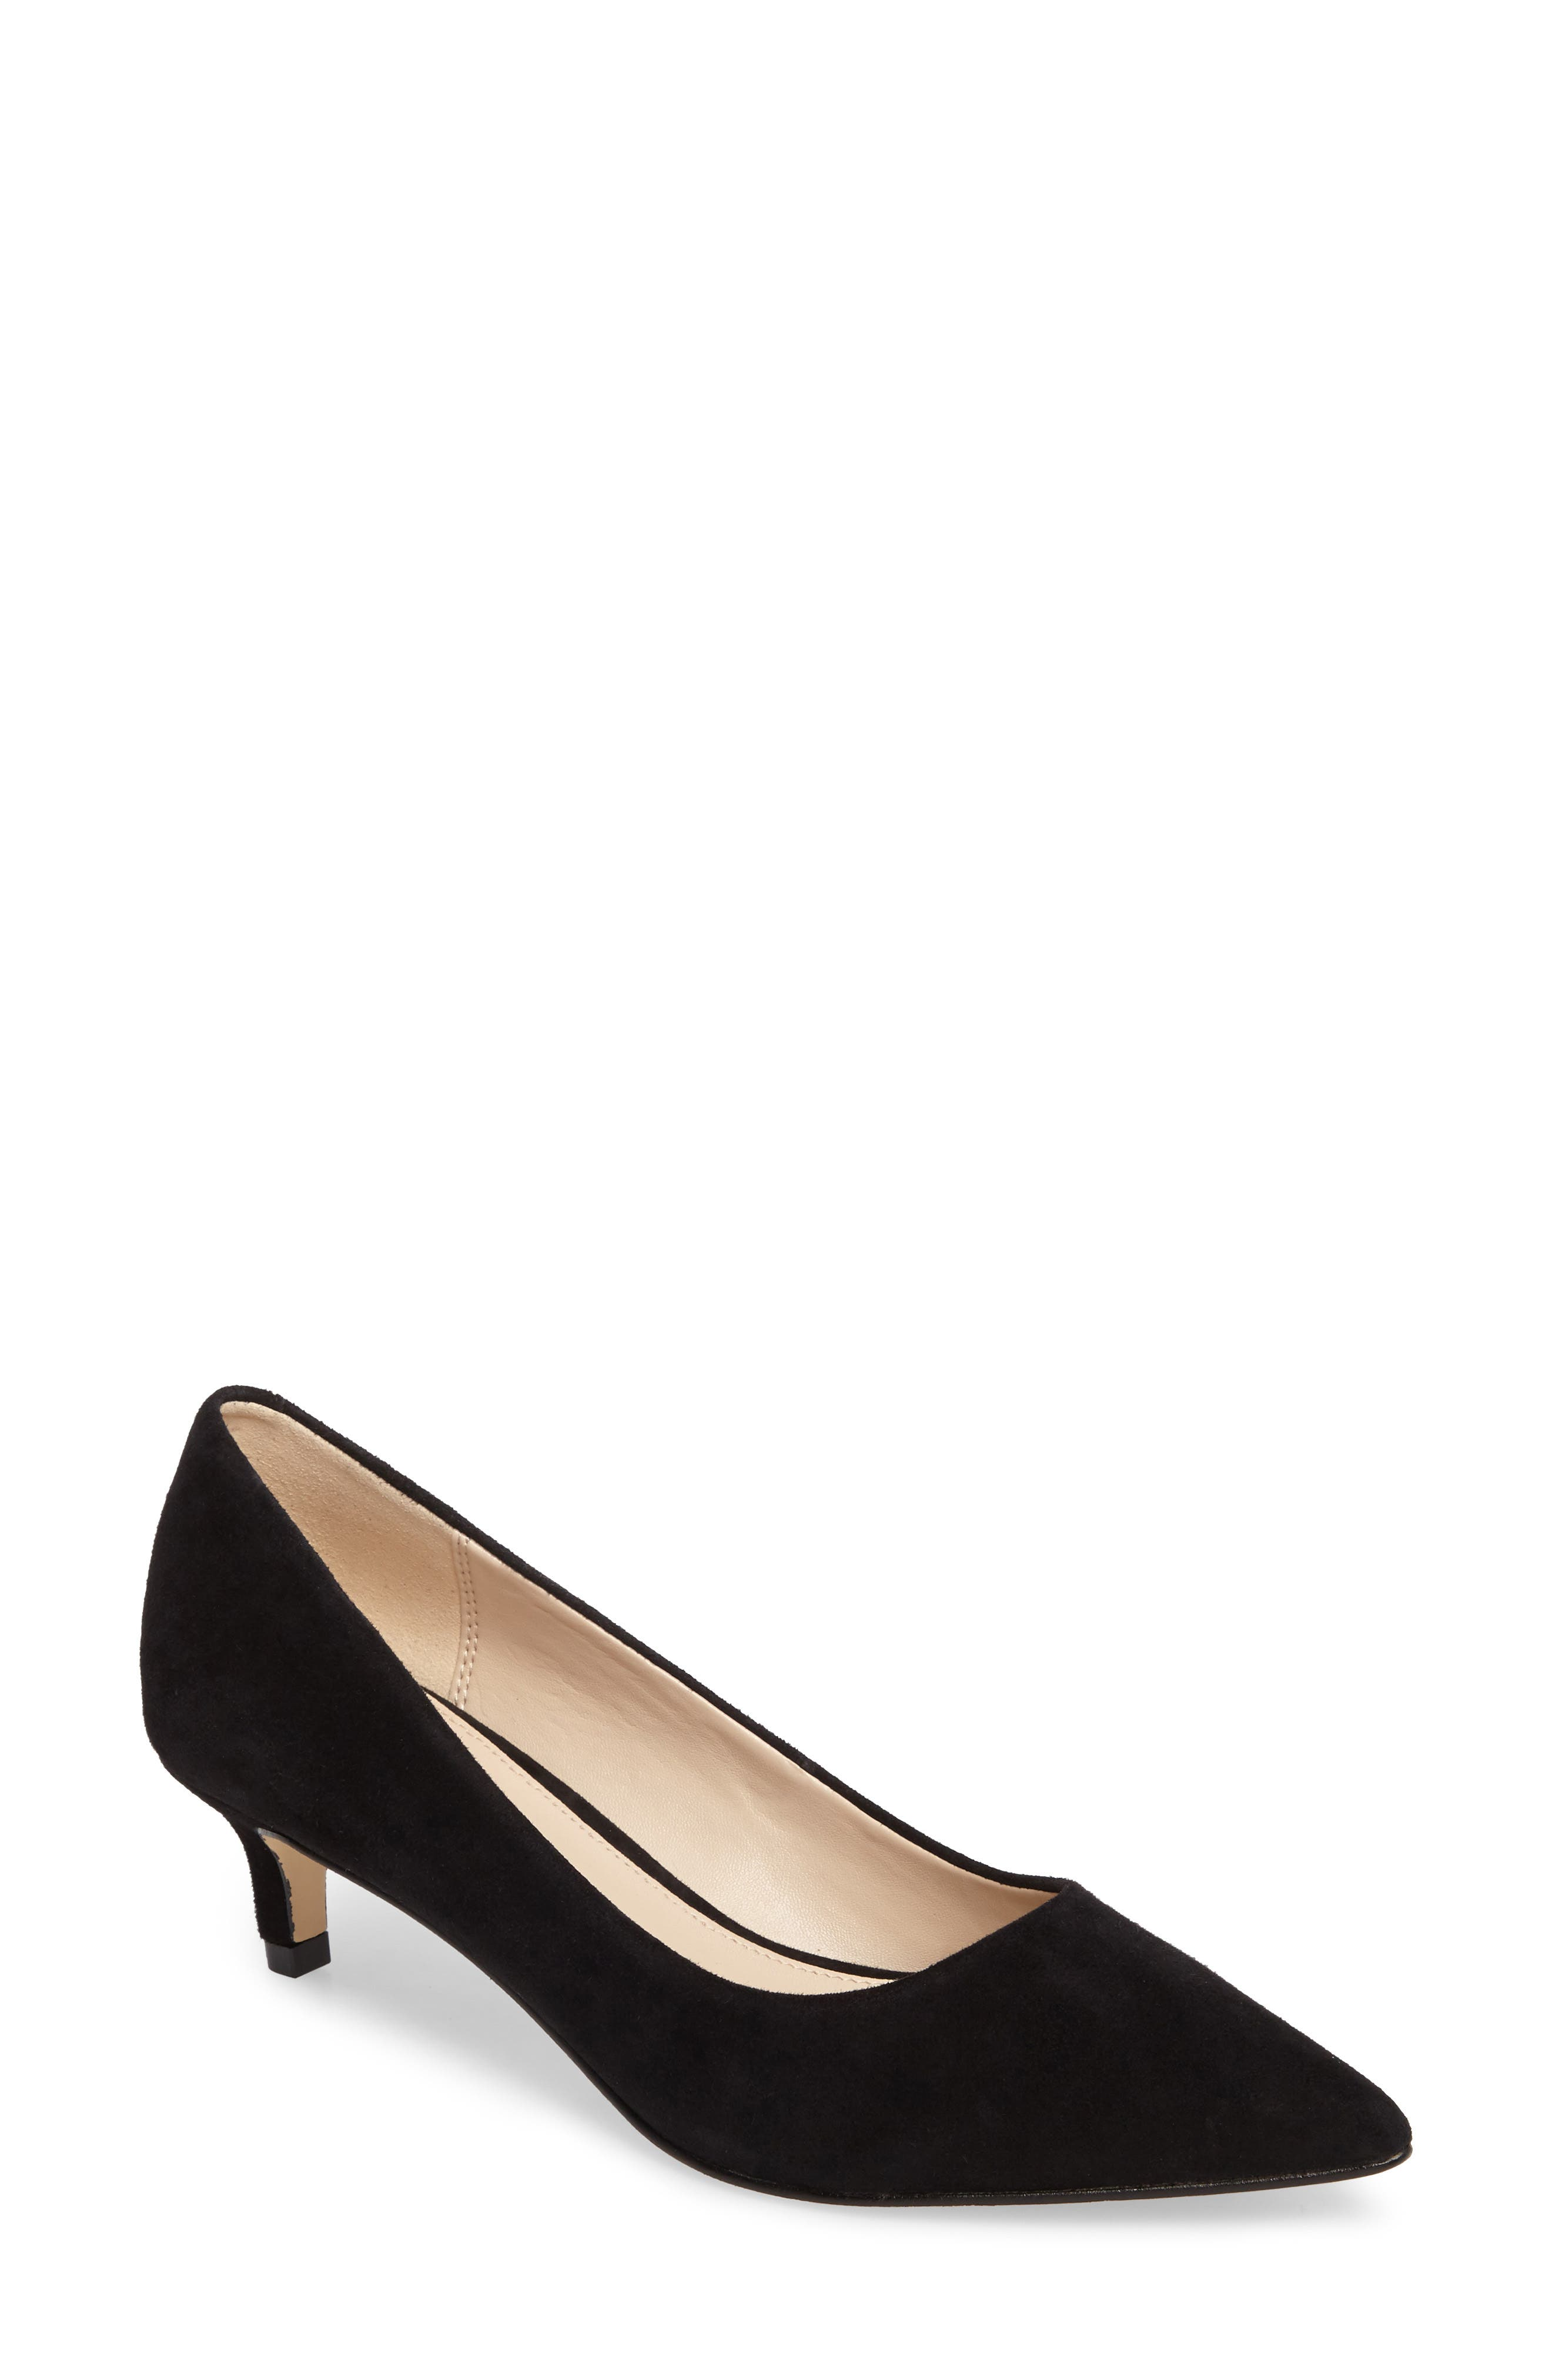 Dena Pointy Toe Pump,                         Main,                         color, Black Leather